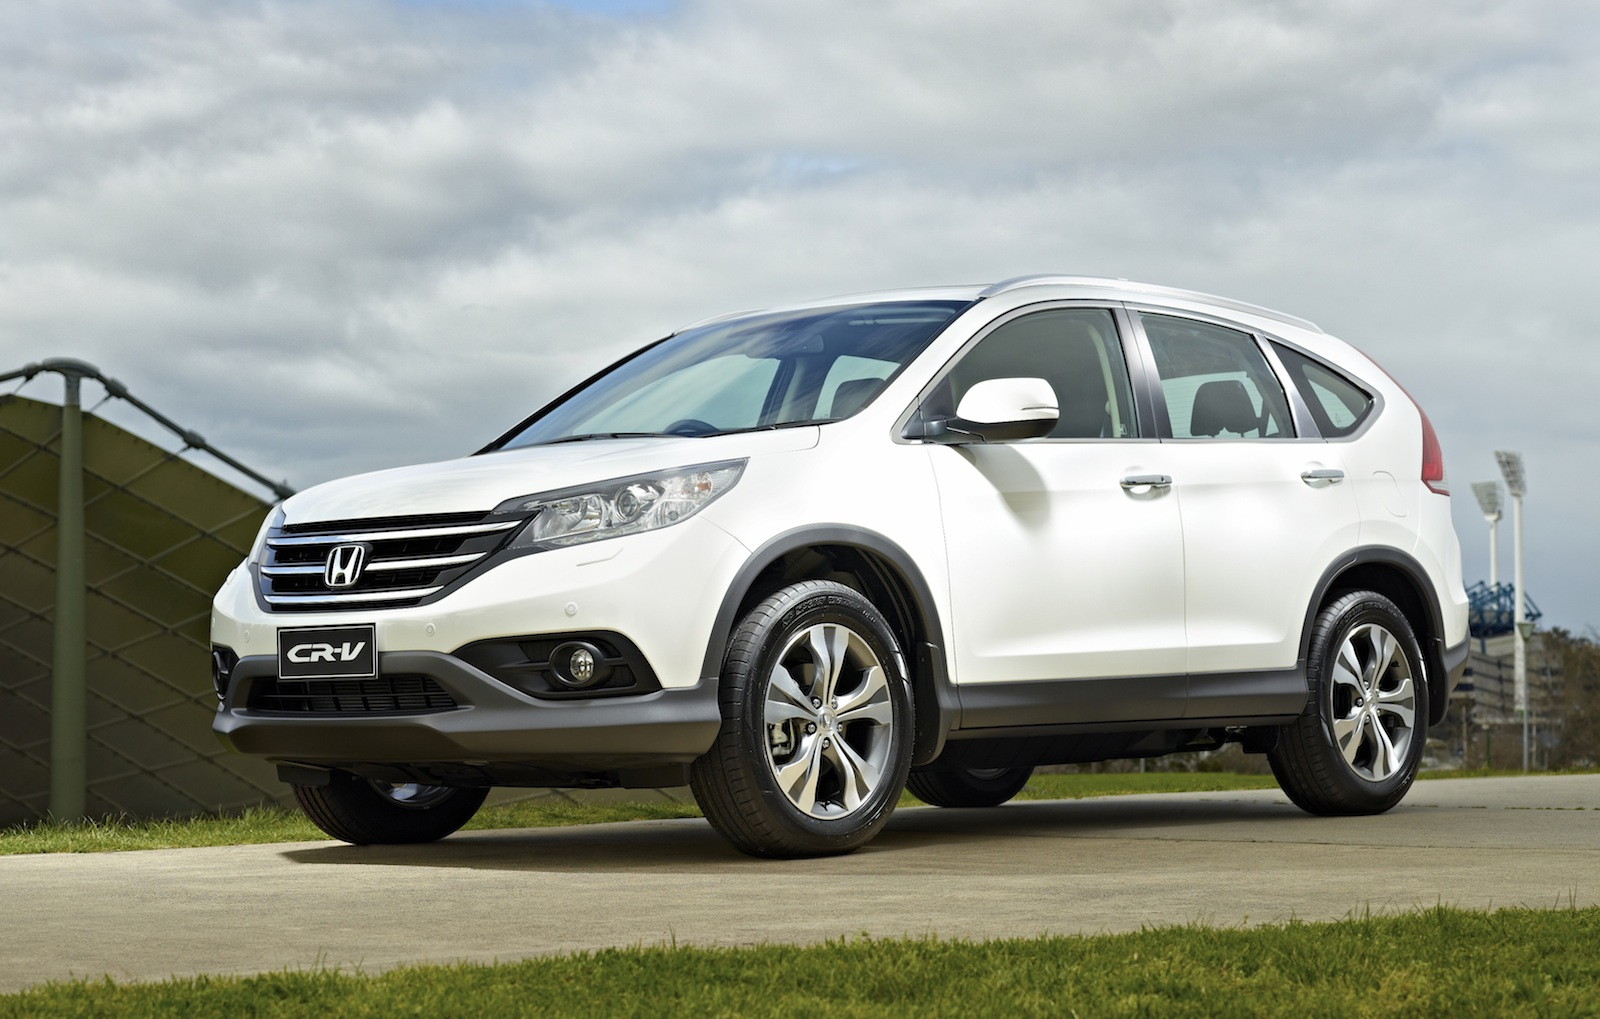 2013 honda cr v priced from 27 490 photos caradvice. Black Bedroom Furniture Sets. Home Design Ideas